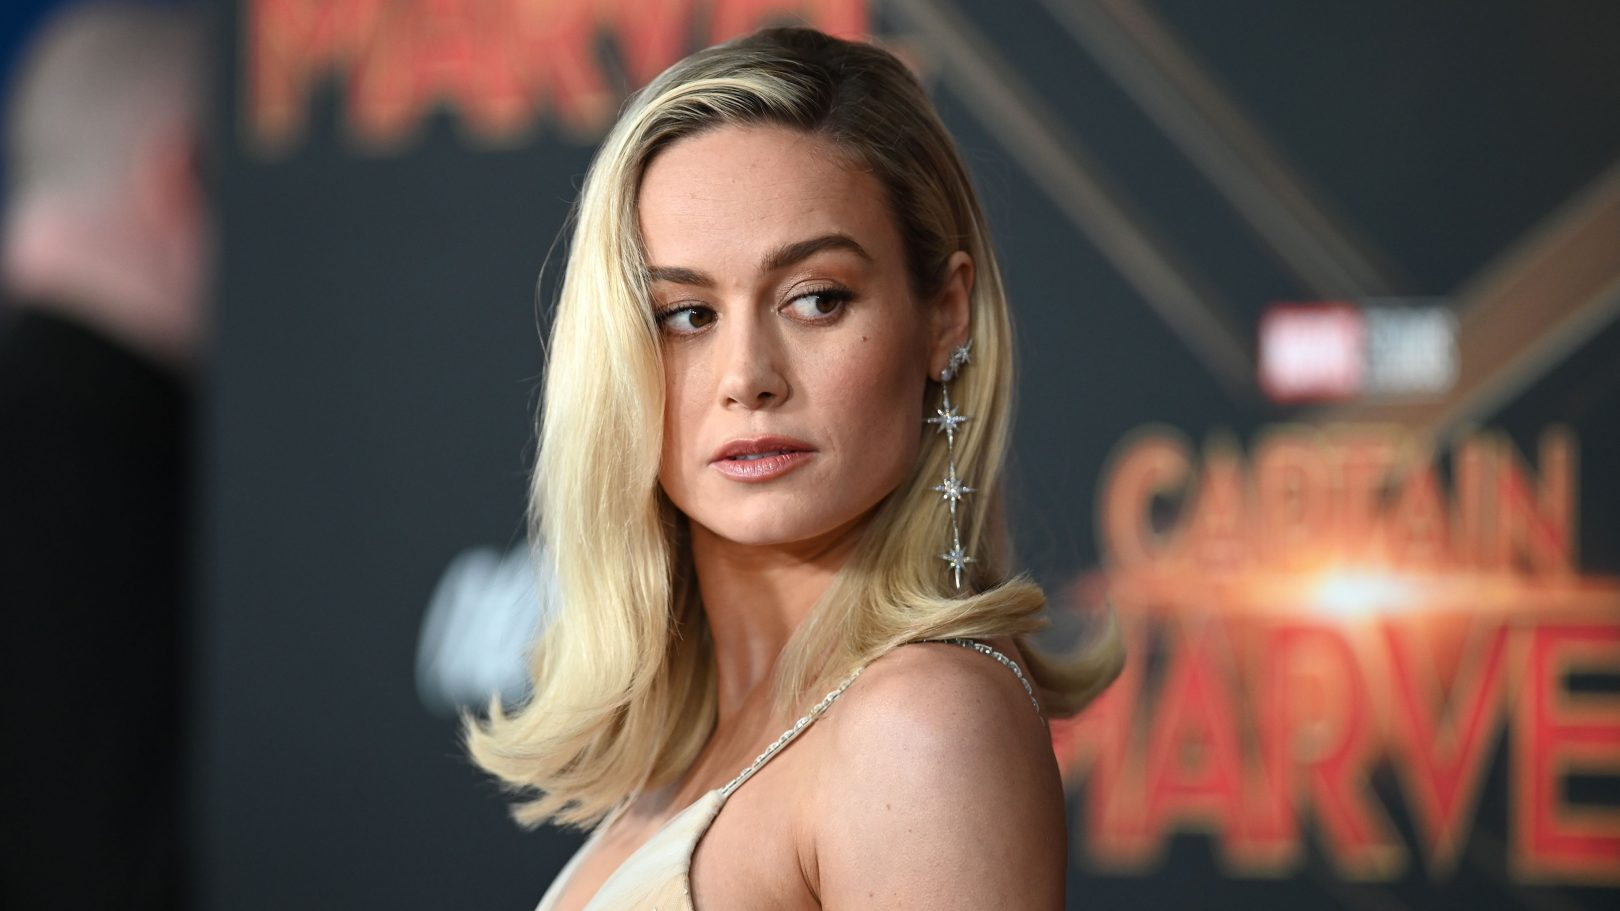 Brie Larson at Captain Marvel premiere